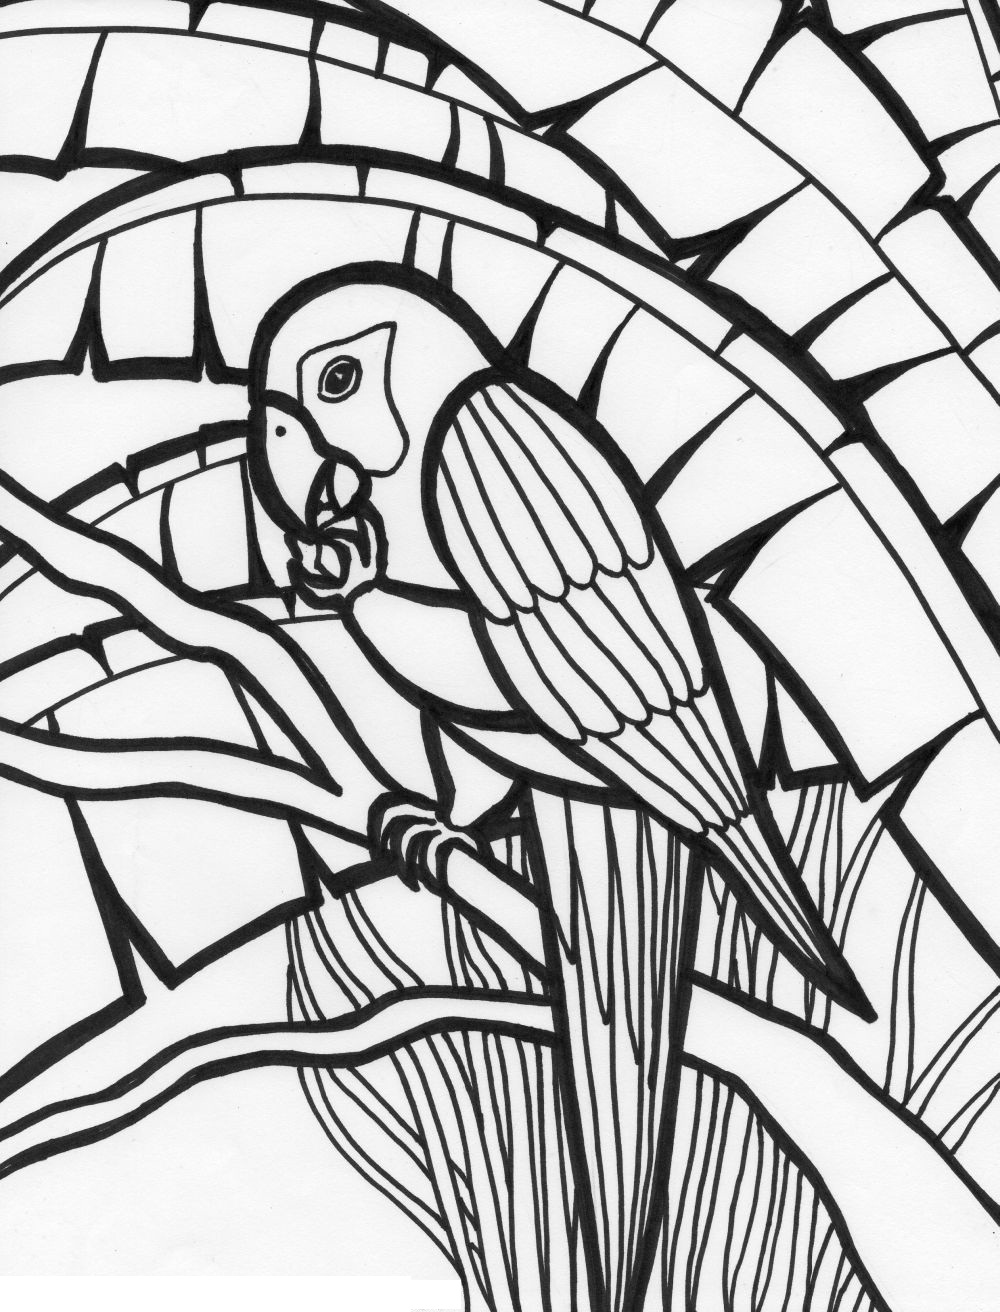 coloring parrot for kids free printable parrot coloring pages for kids animal place parrot coloring for kids